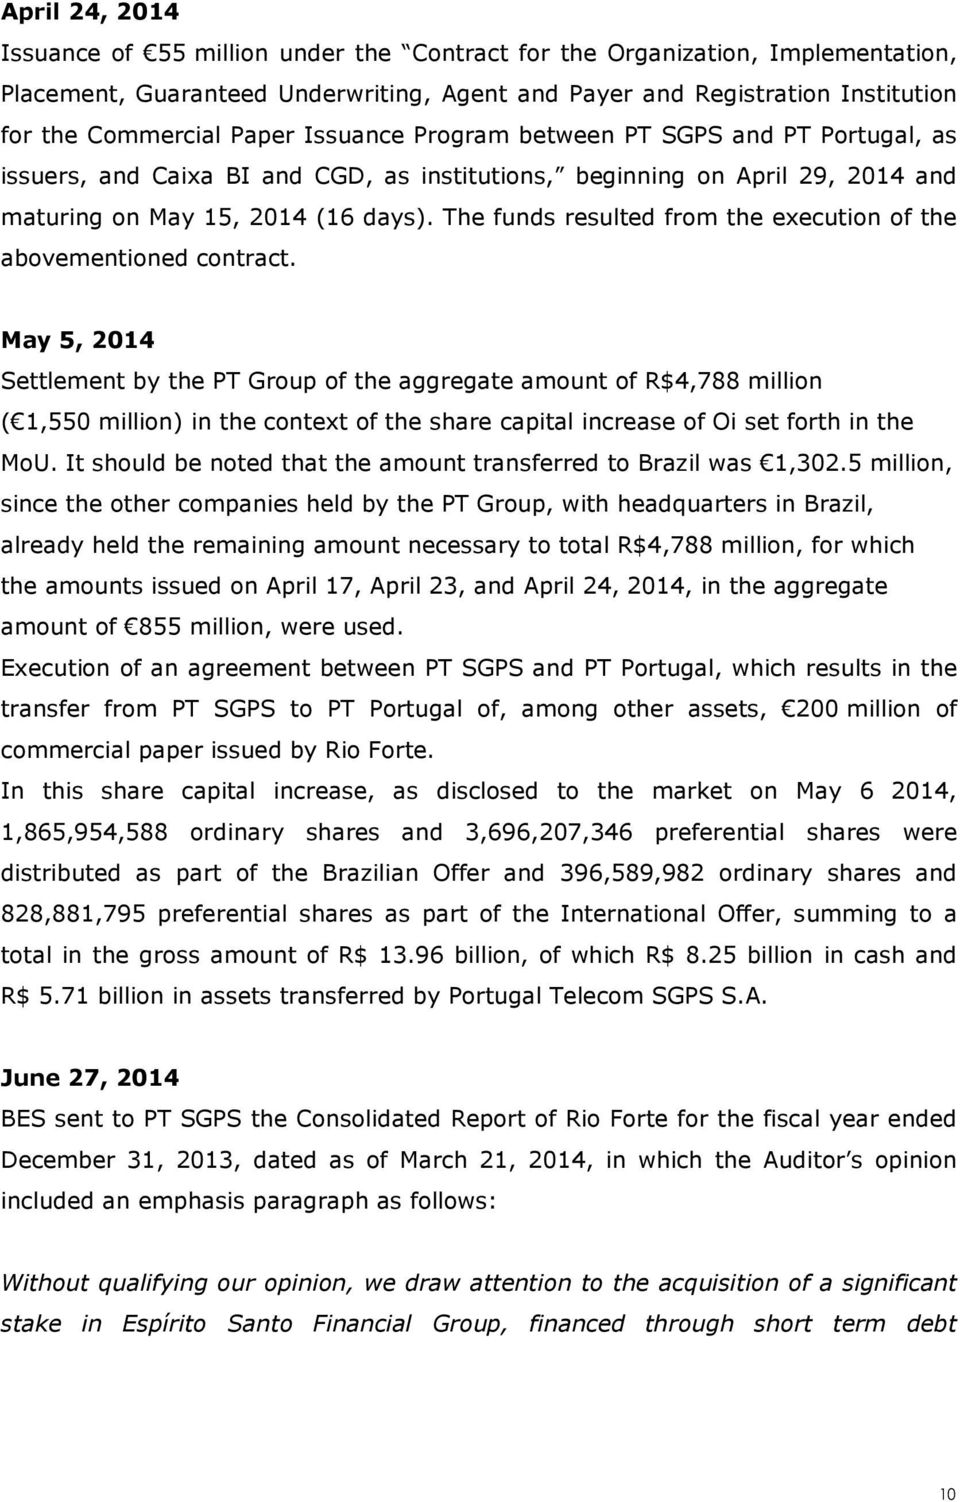 The funds resulted from the execution of the abovementioned contract.